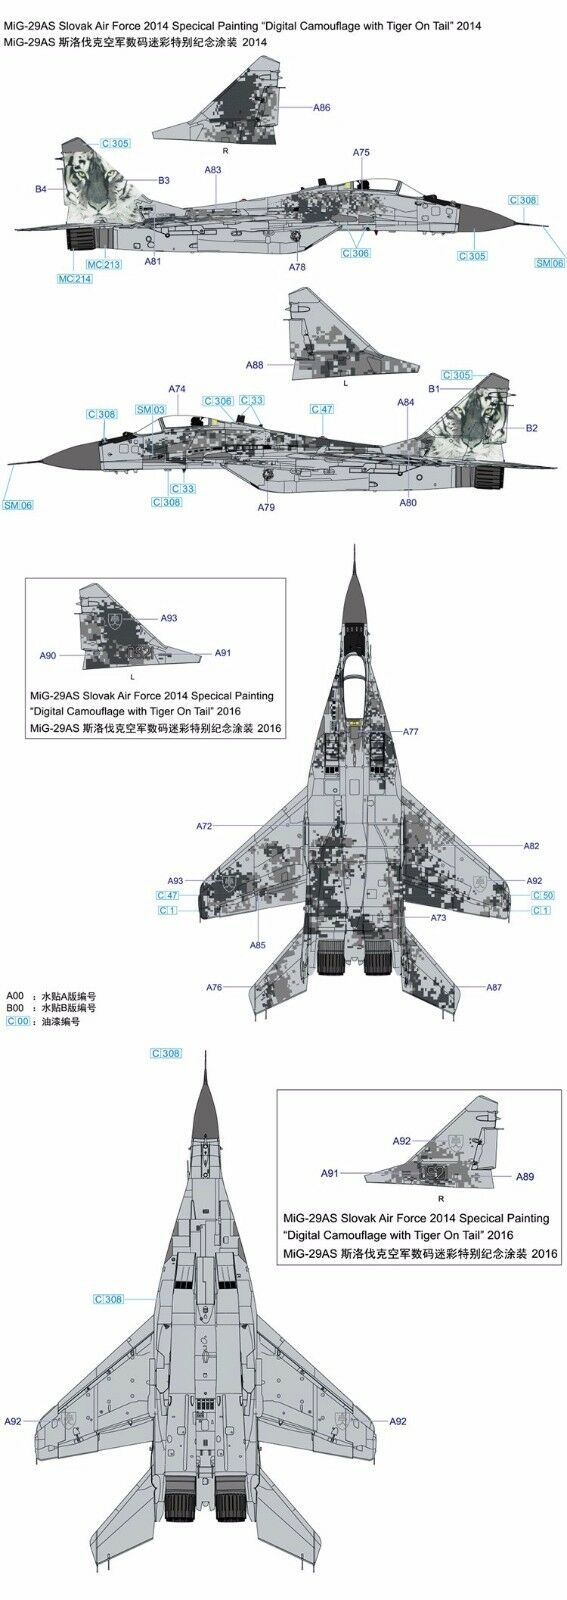 Great Wall Hobby S4809 S4809 S4809 1 48 MiG-29AS Slovak Airforce 2014 Special Painting a8a3c8